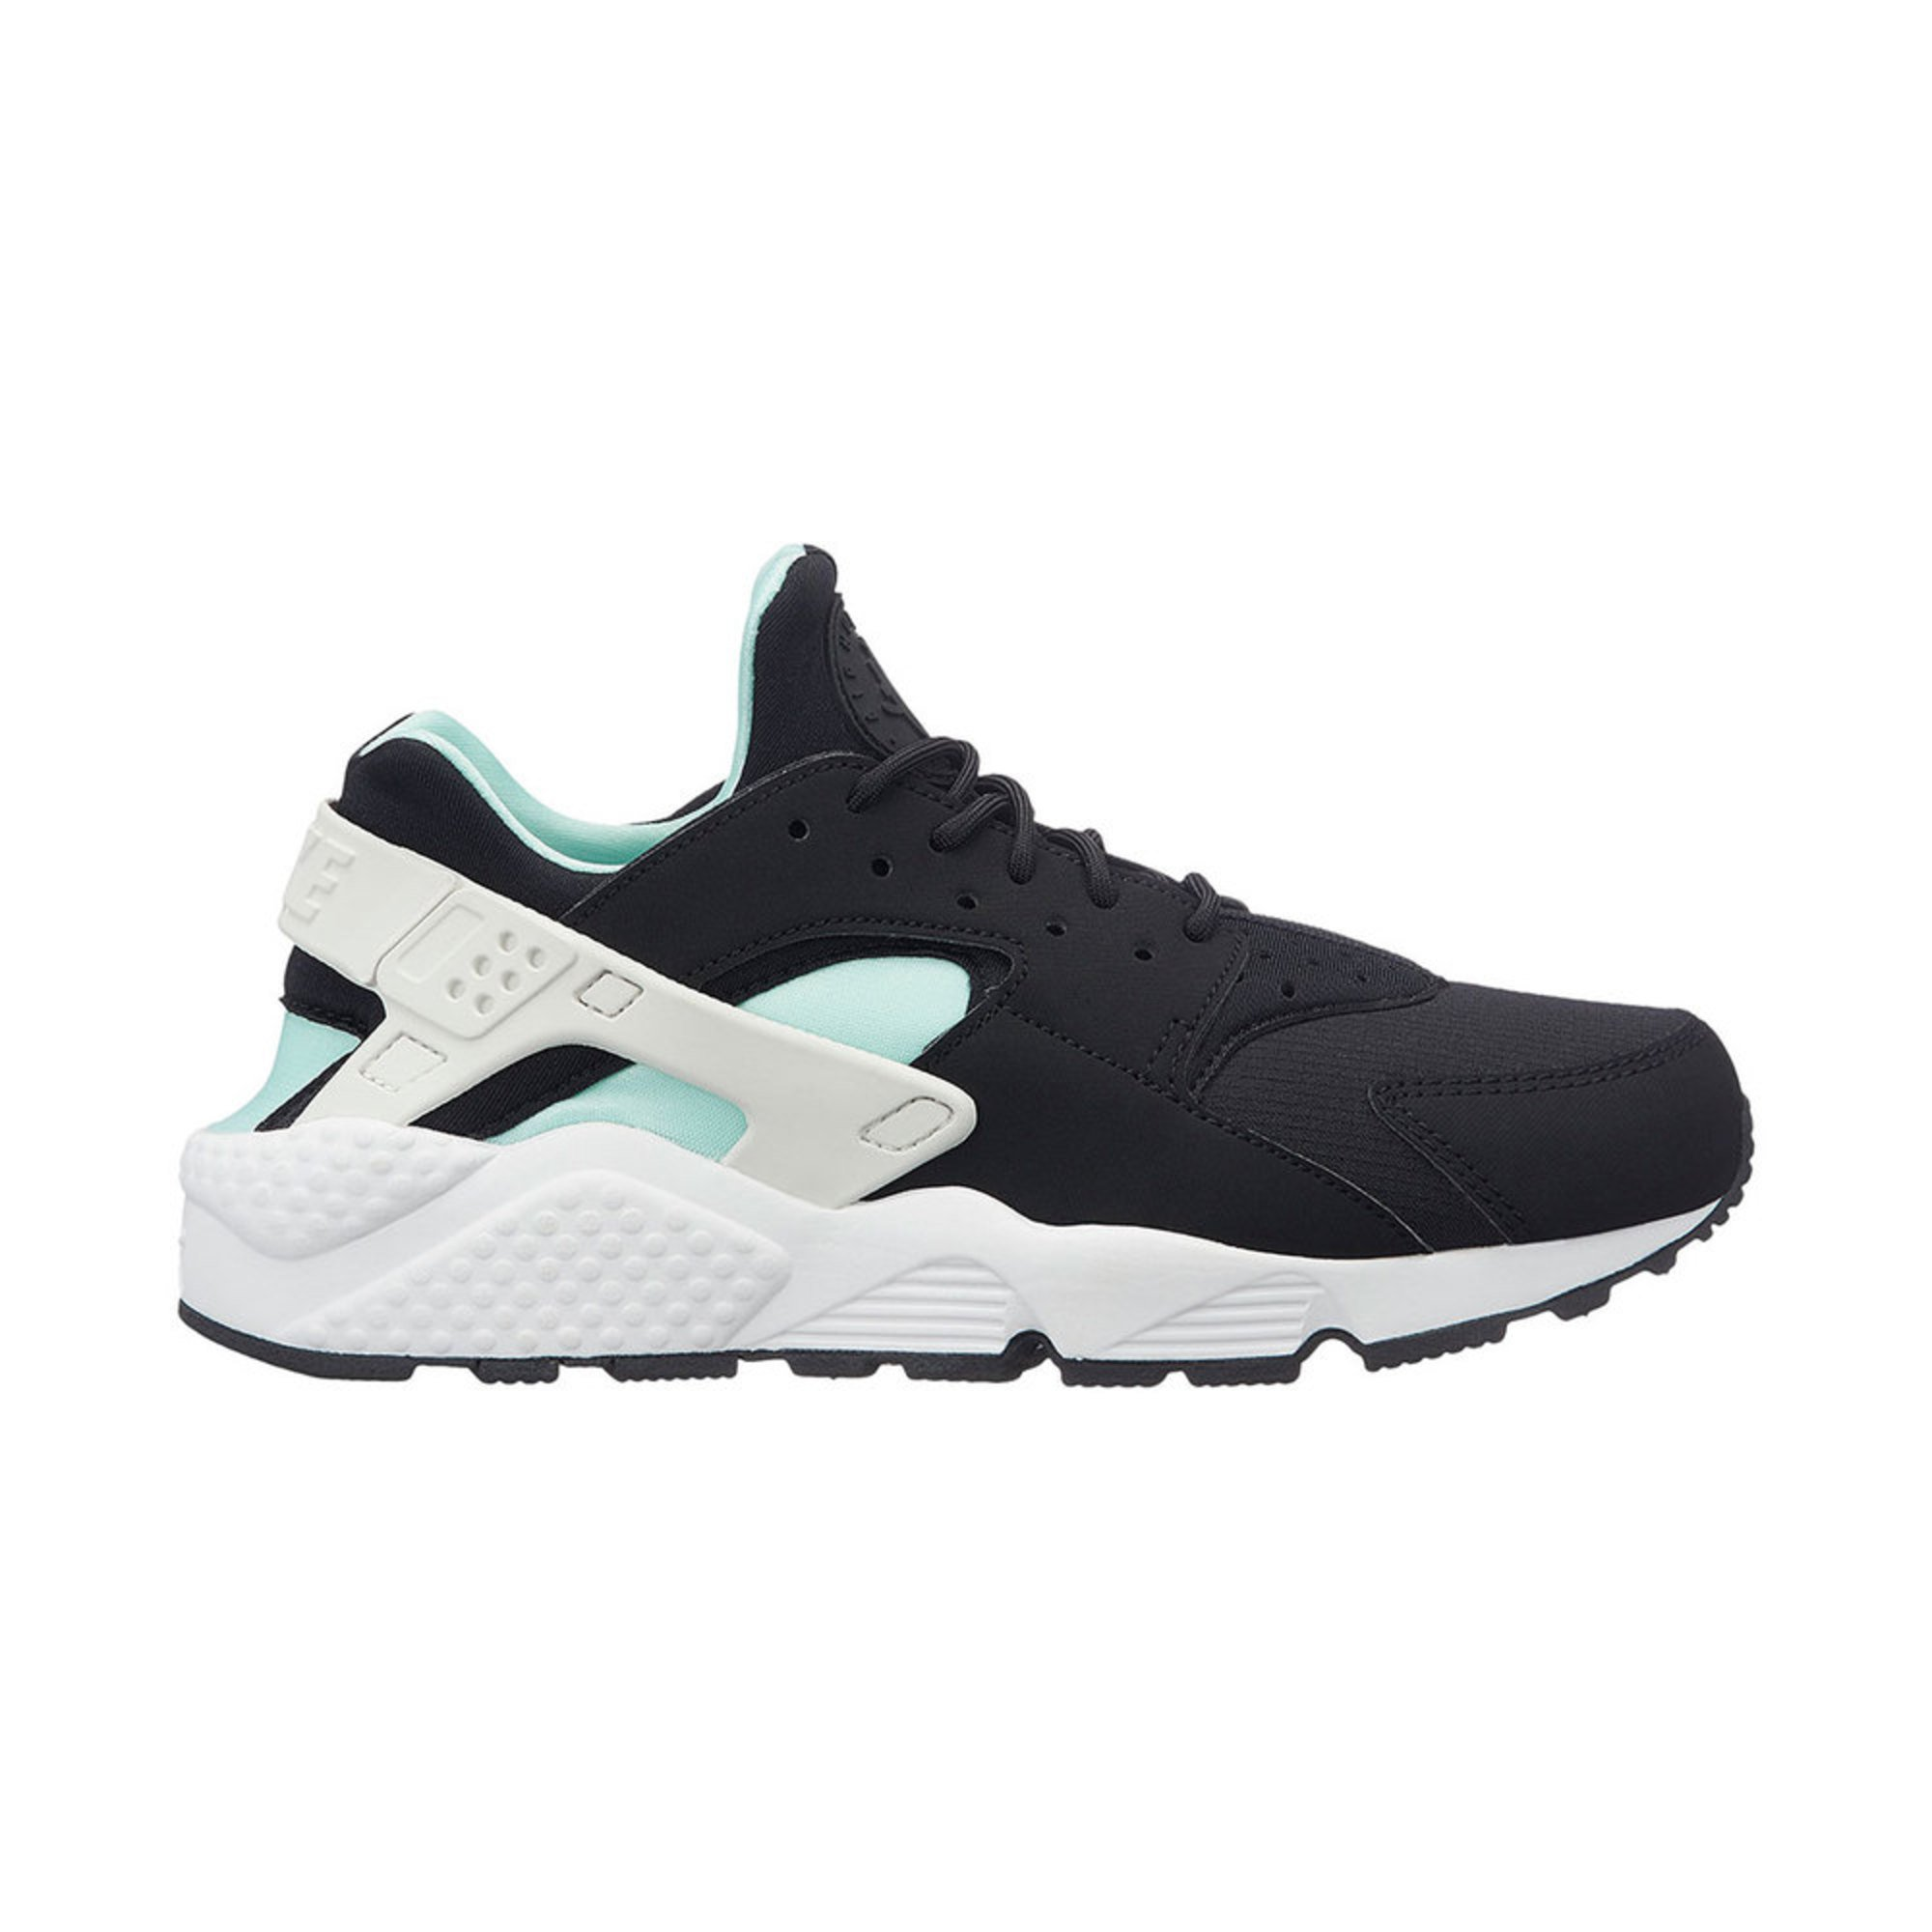 new products af4f2 441f4 Nike. Nike Women s Air Huarache Run Lifestyle Shoe